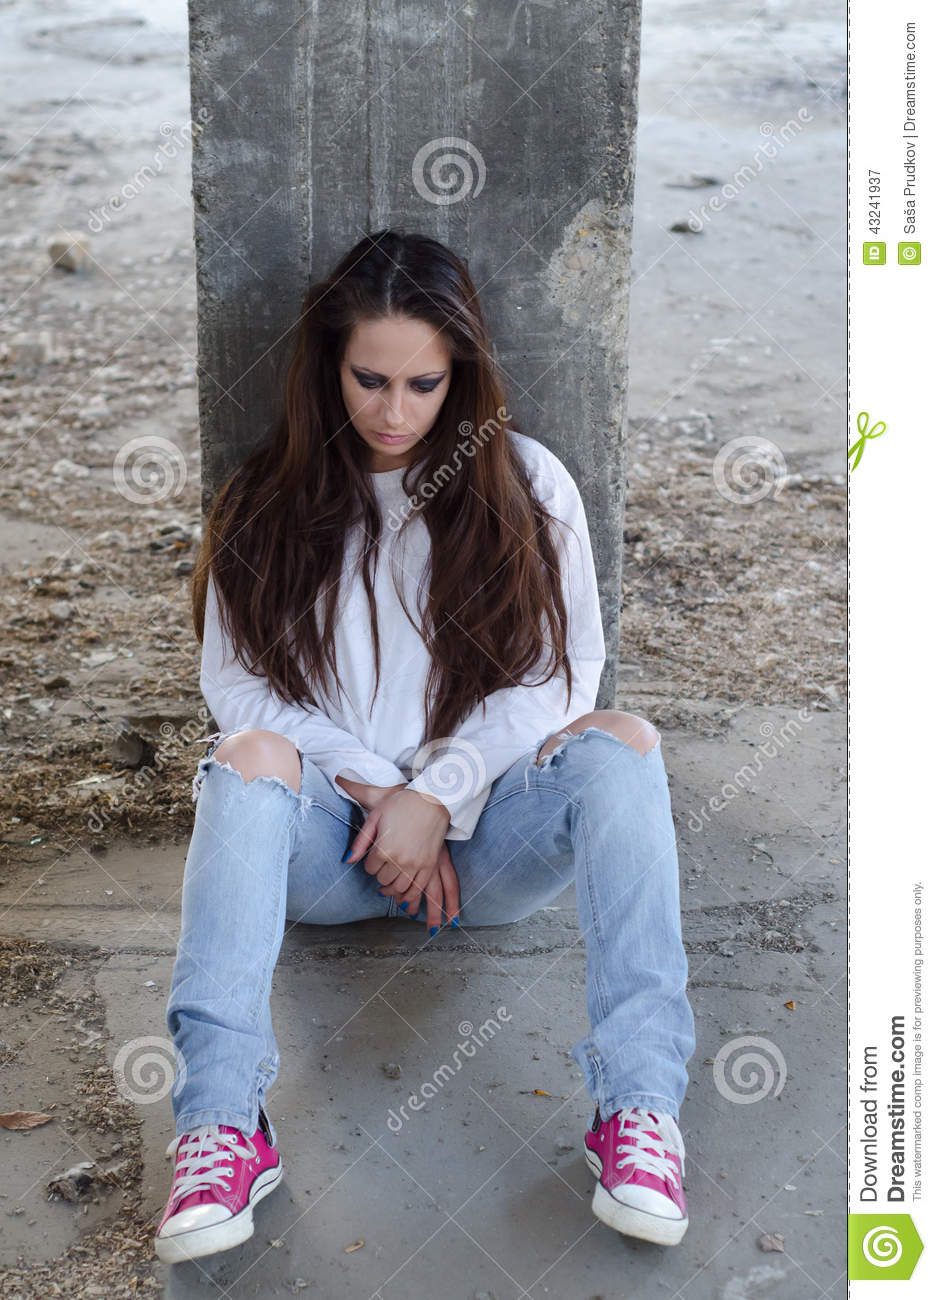 Depressed Young Girl Lost In Thoughts Stock Image Image